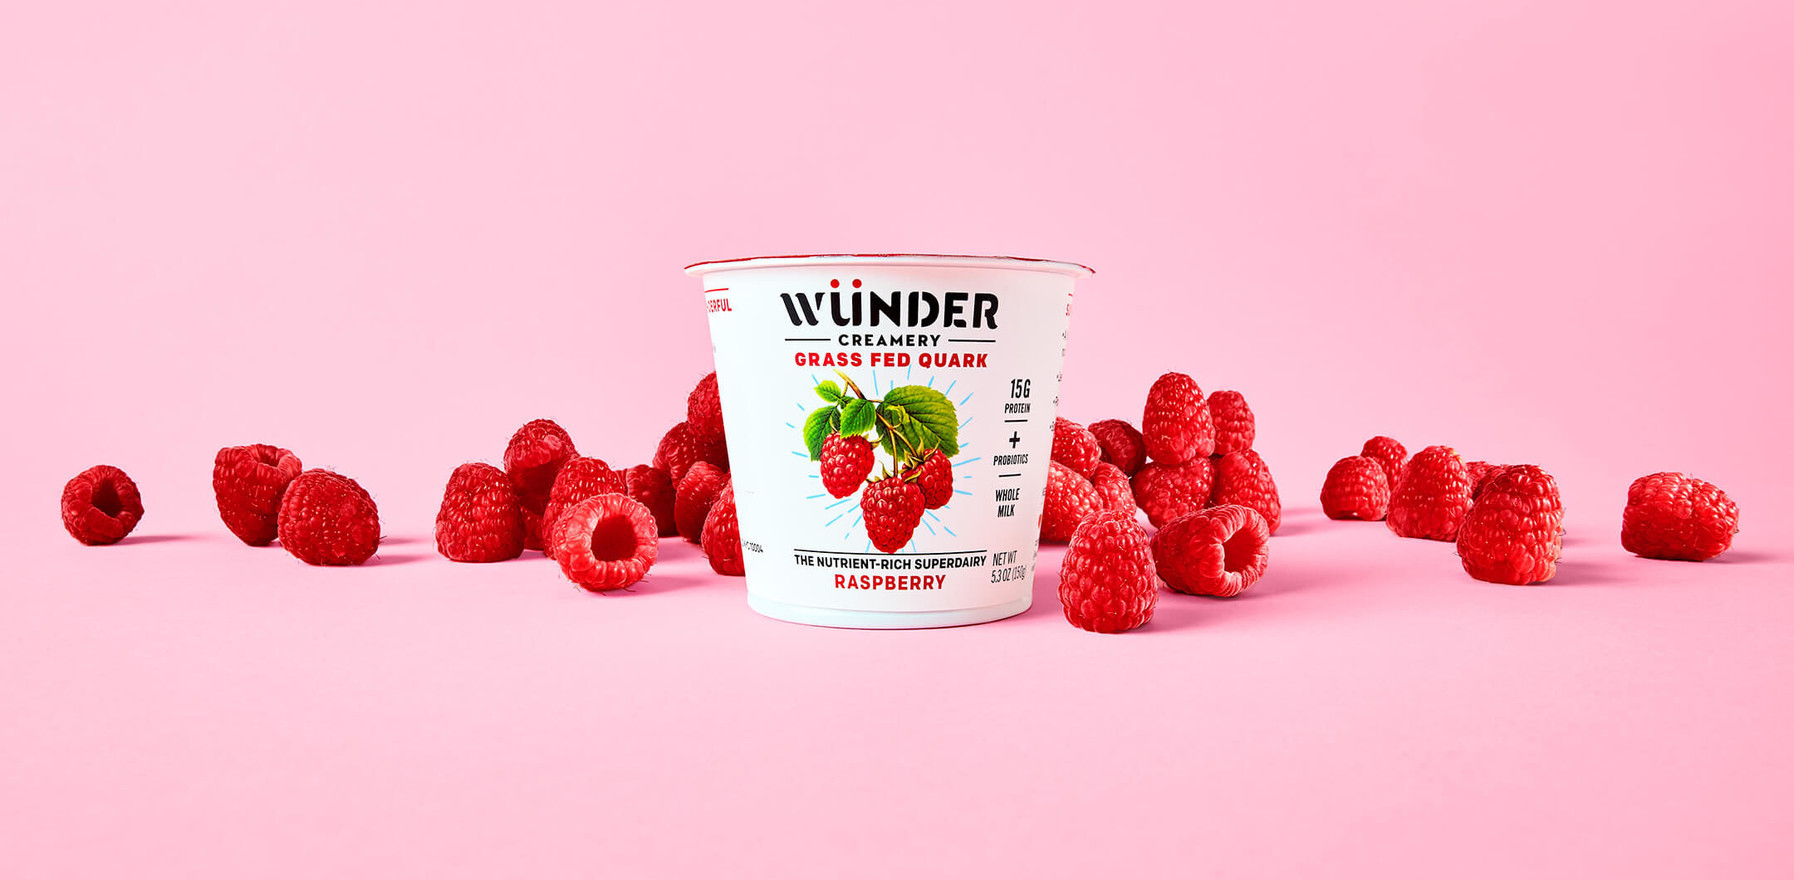 Wunder Creamery (Click to View)